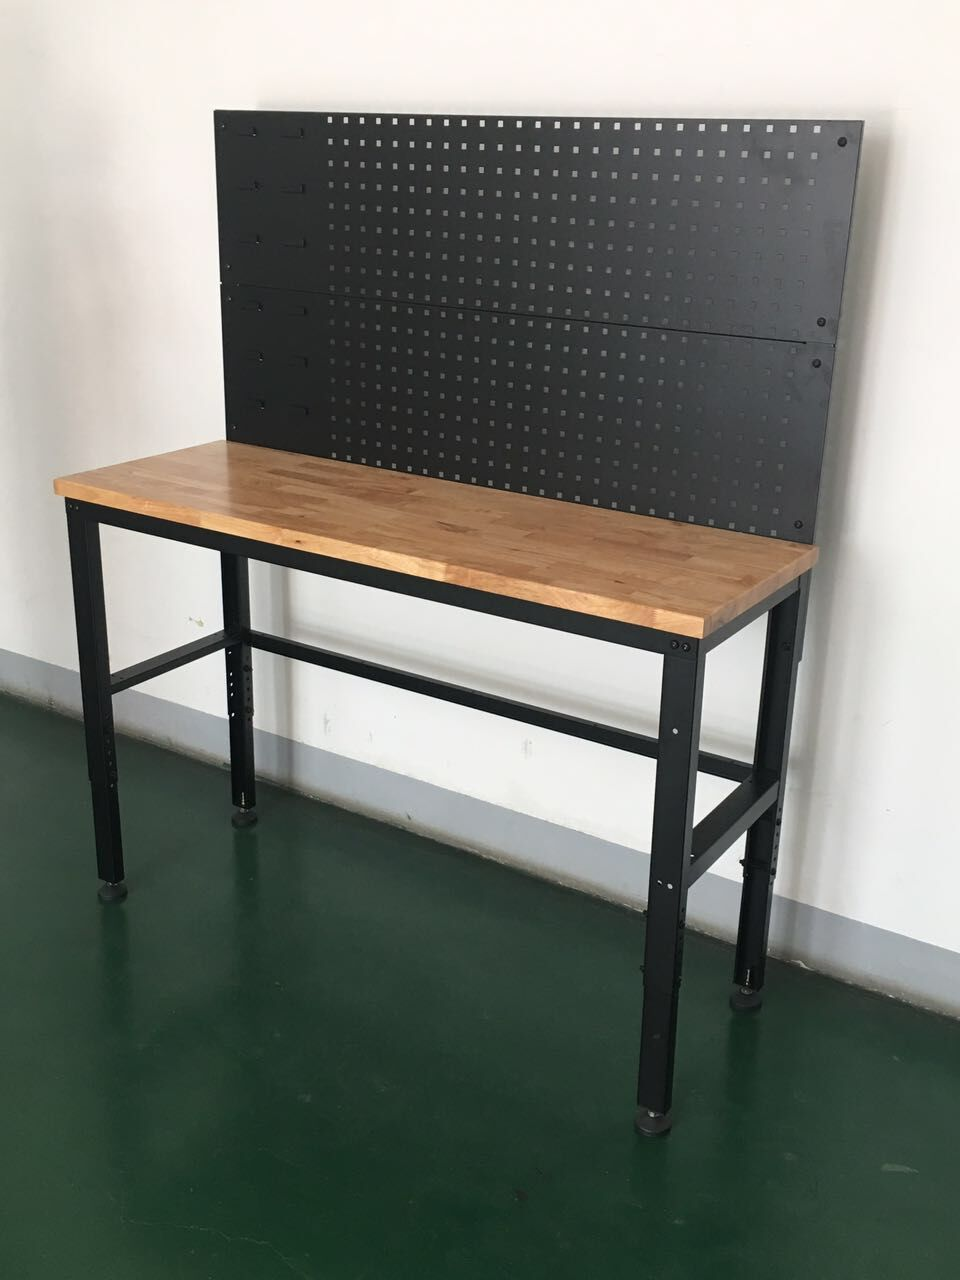 workbench for garage, more items can be supplied, Linkup Store Equipment Co., Ltd.